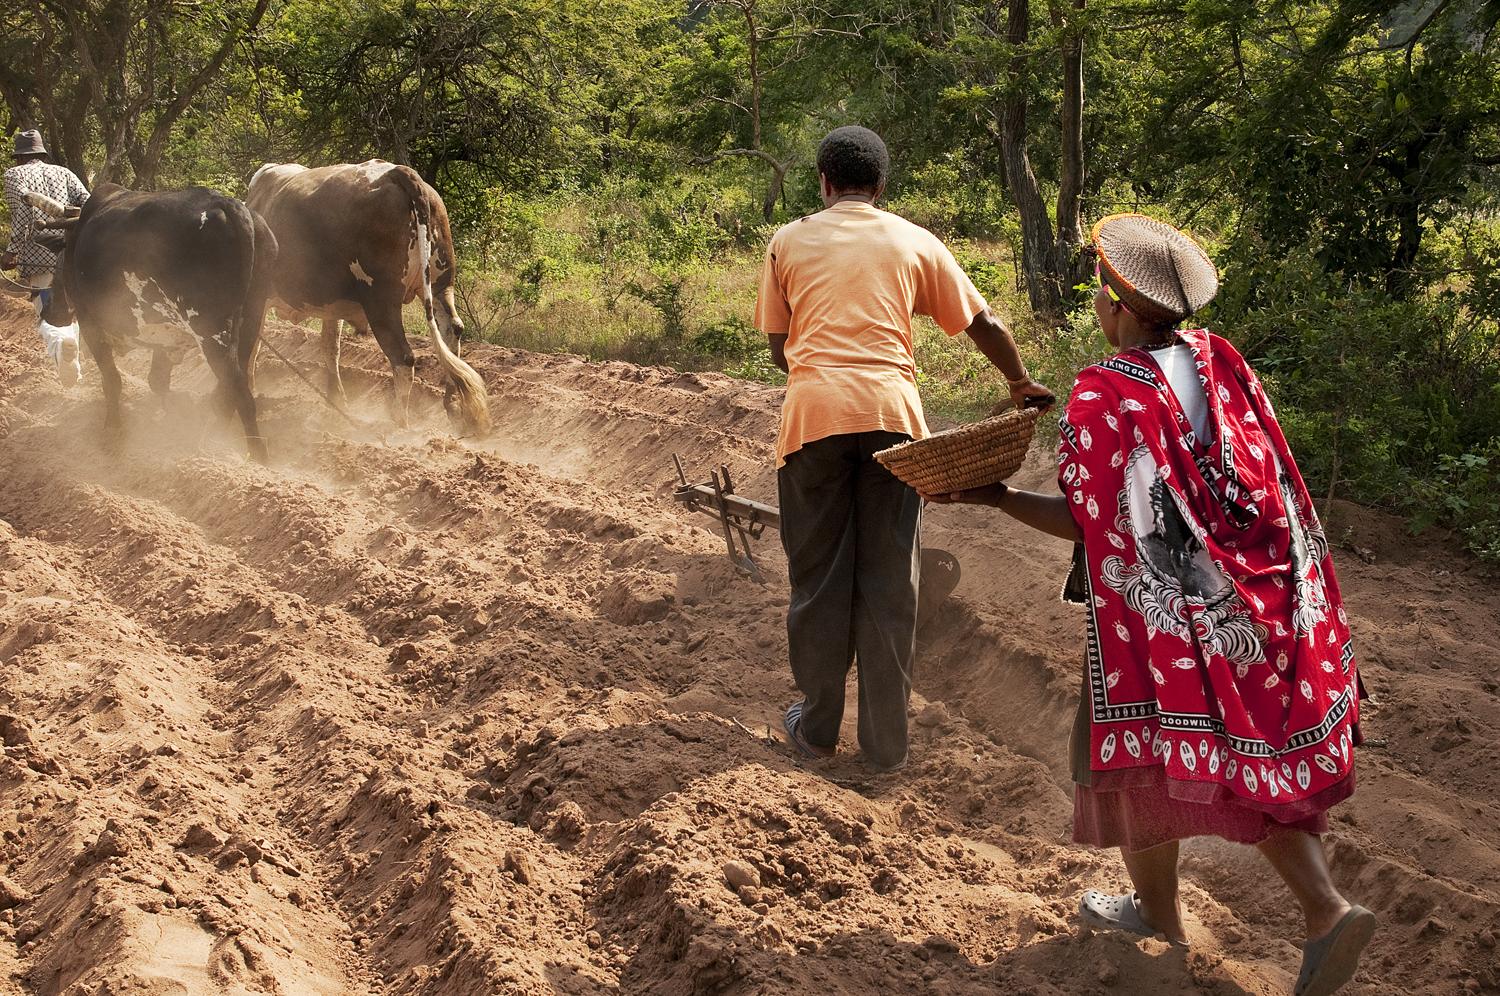 KwaZulu-Natal, Zulus and their traditional work in the field